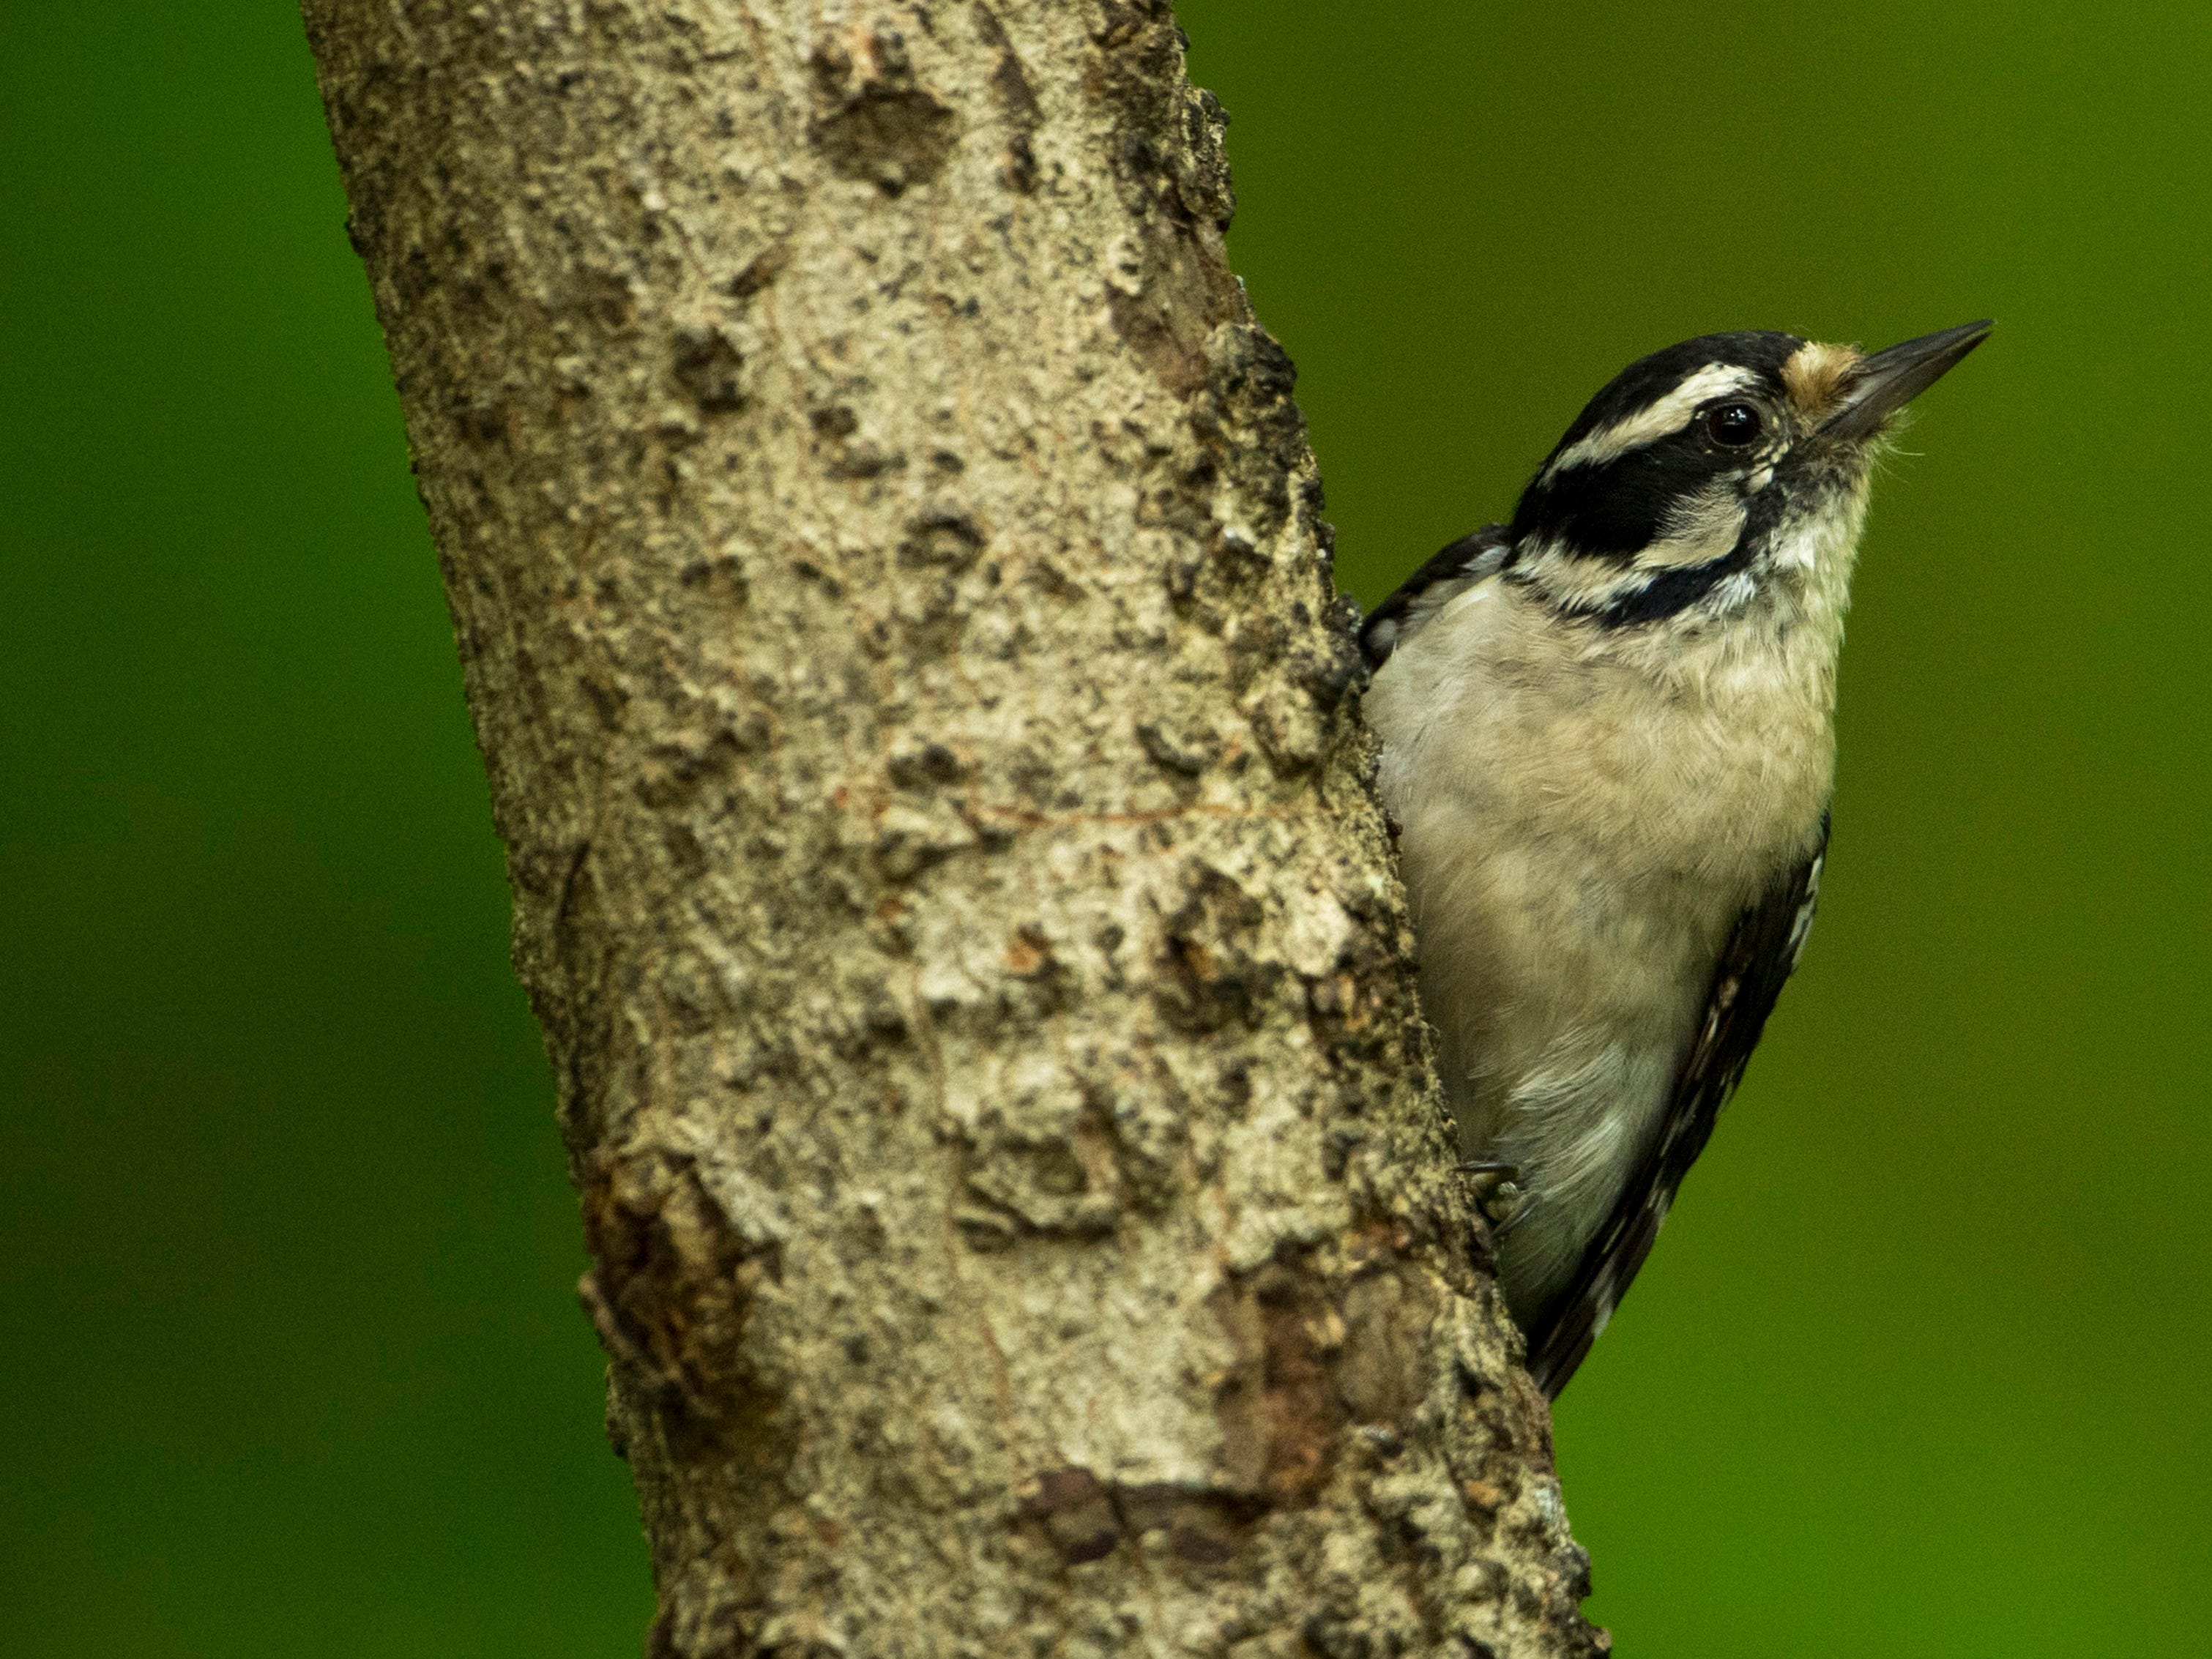 A female downey woodpecker outside the Wesselman Woods Nature Preserve's bird viewing station in late June.